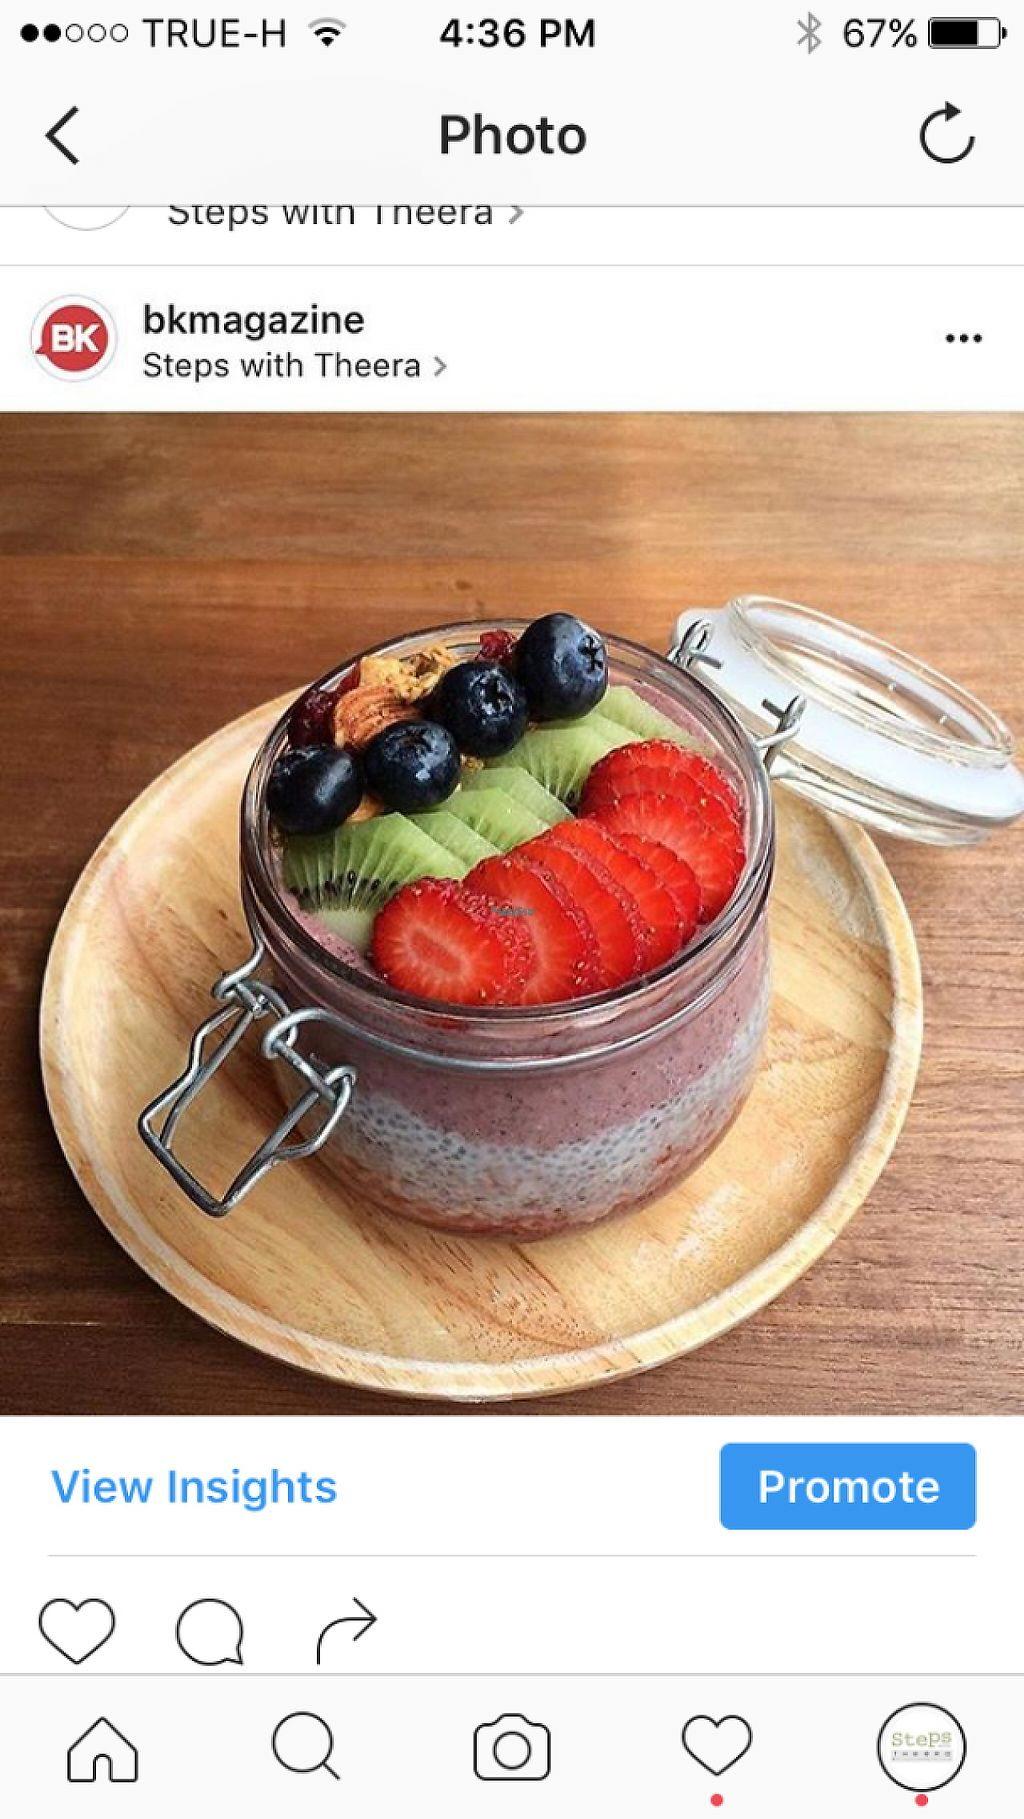 """Photo of Steps with Theera  by <a href=""""/members/profile/MaxSimpson"""">MaxSimpson</a> <br/>Chai and acai layered jar with fresh fruit  <br/> January 22, 2017  - <a href='/contact/abuse/image/85845/214416'>Report</a>"""